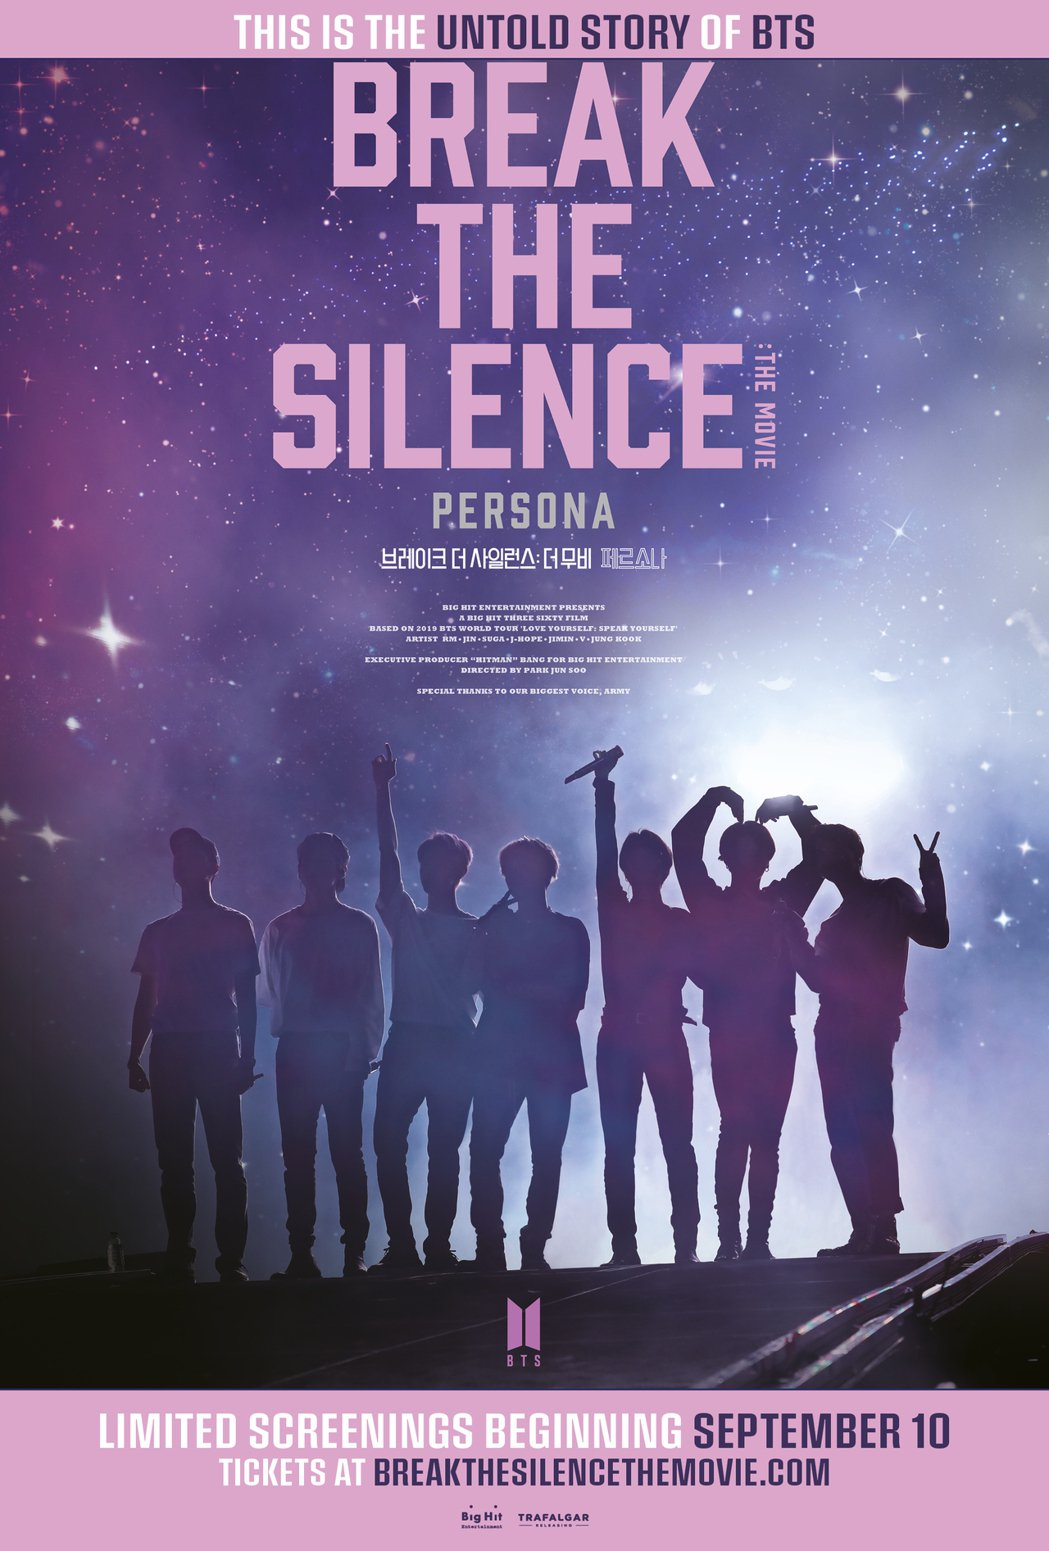 BTS紀錄片「Break The Silence: The Movie」。圖/威